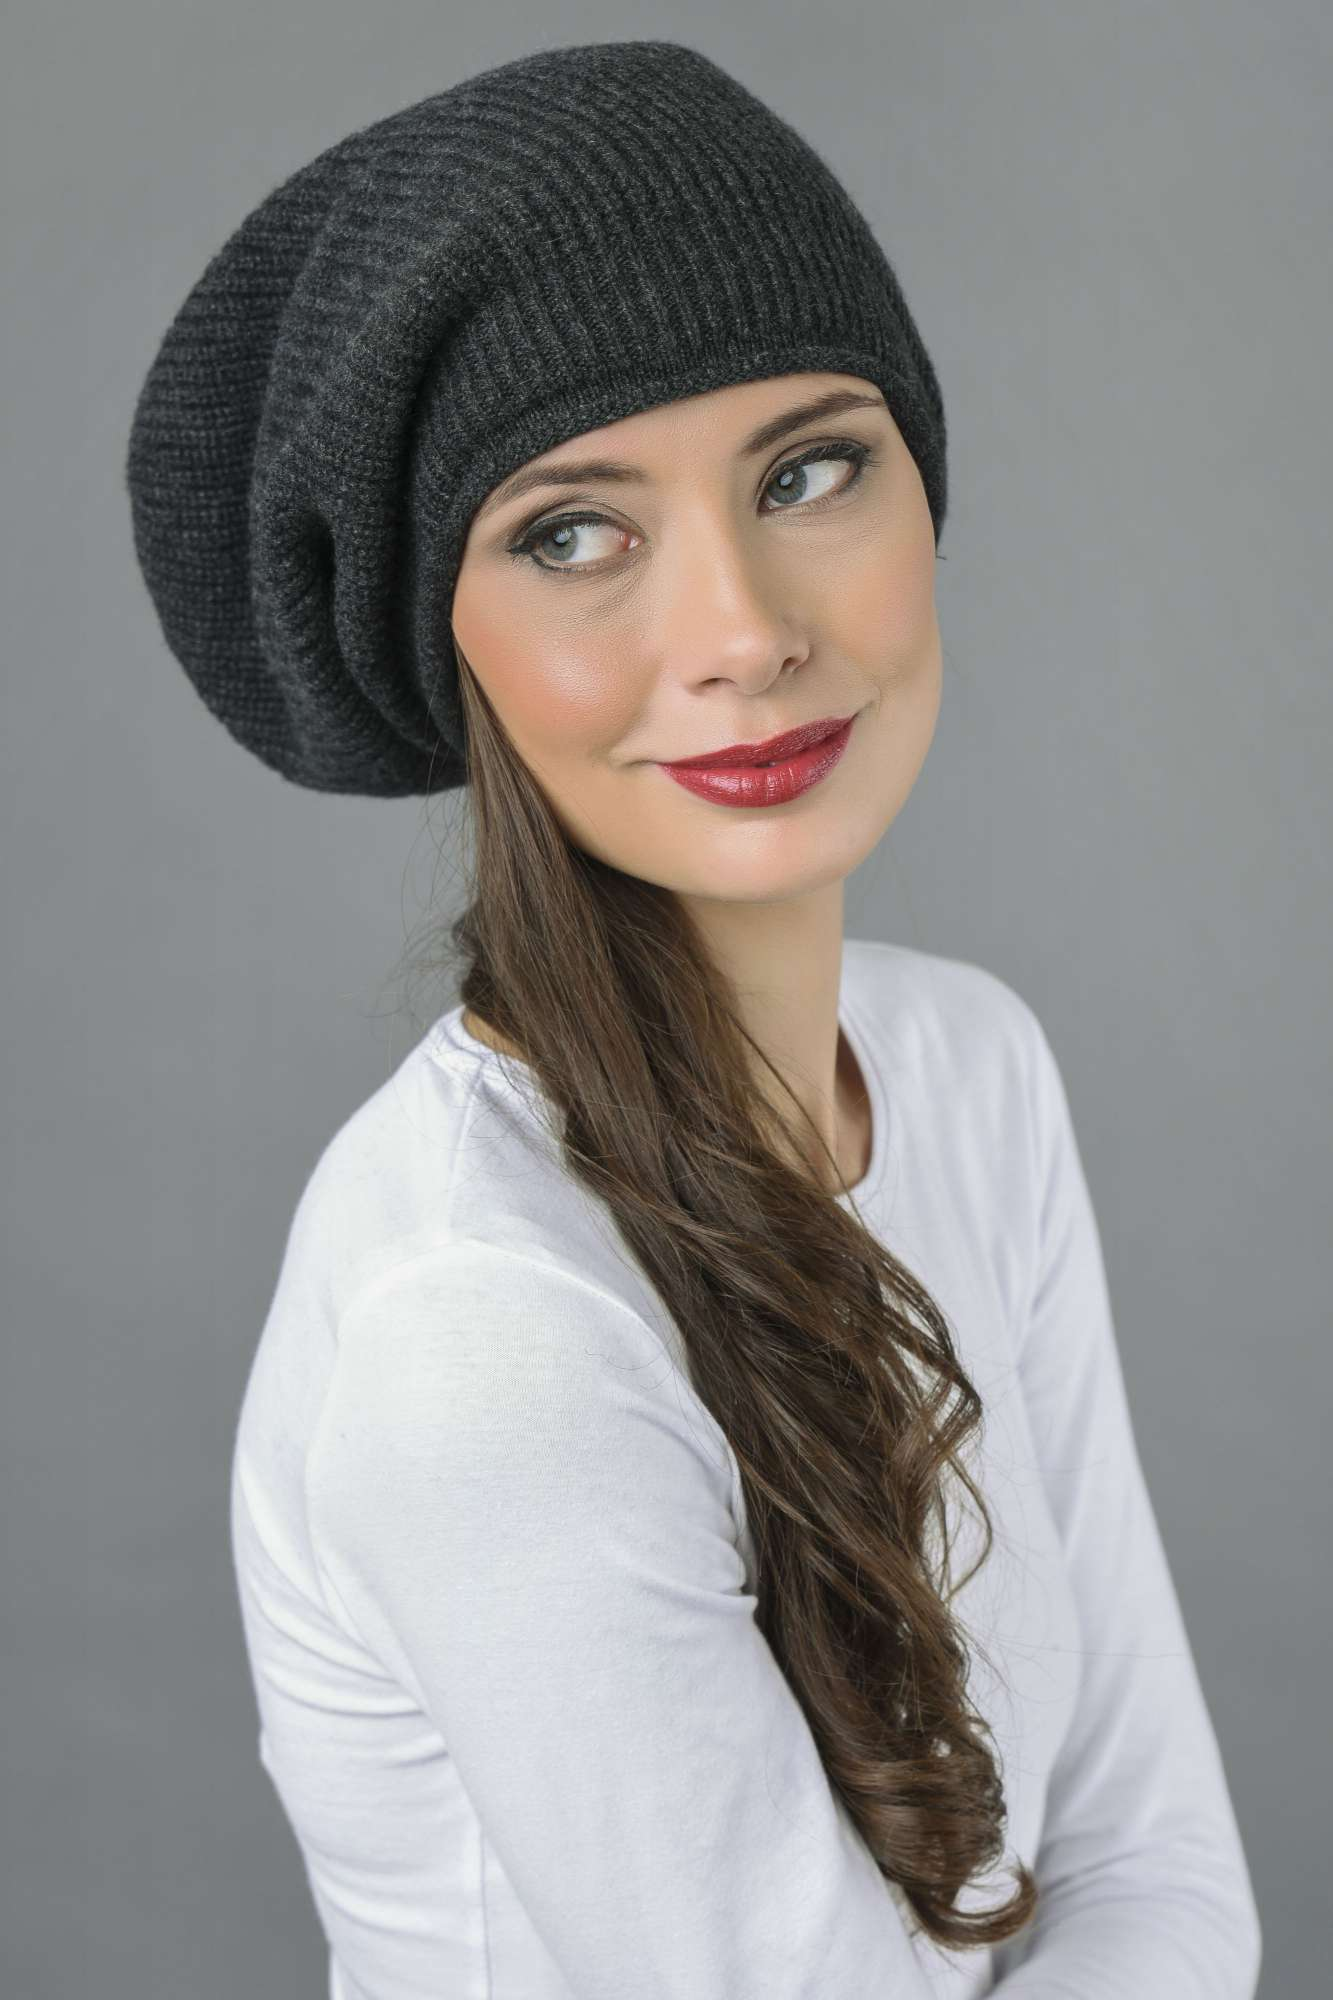 Pure Cashmere Ribbed Knitted Slouchy Beanie Hat in Charcoal Grey ... 364a4bad273